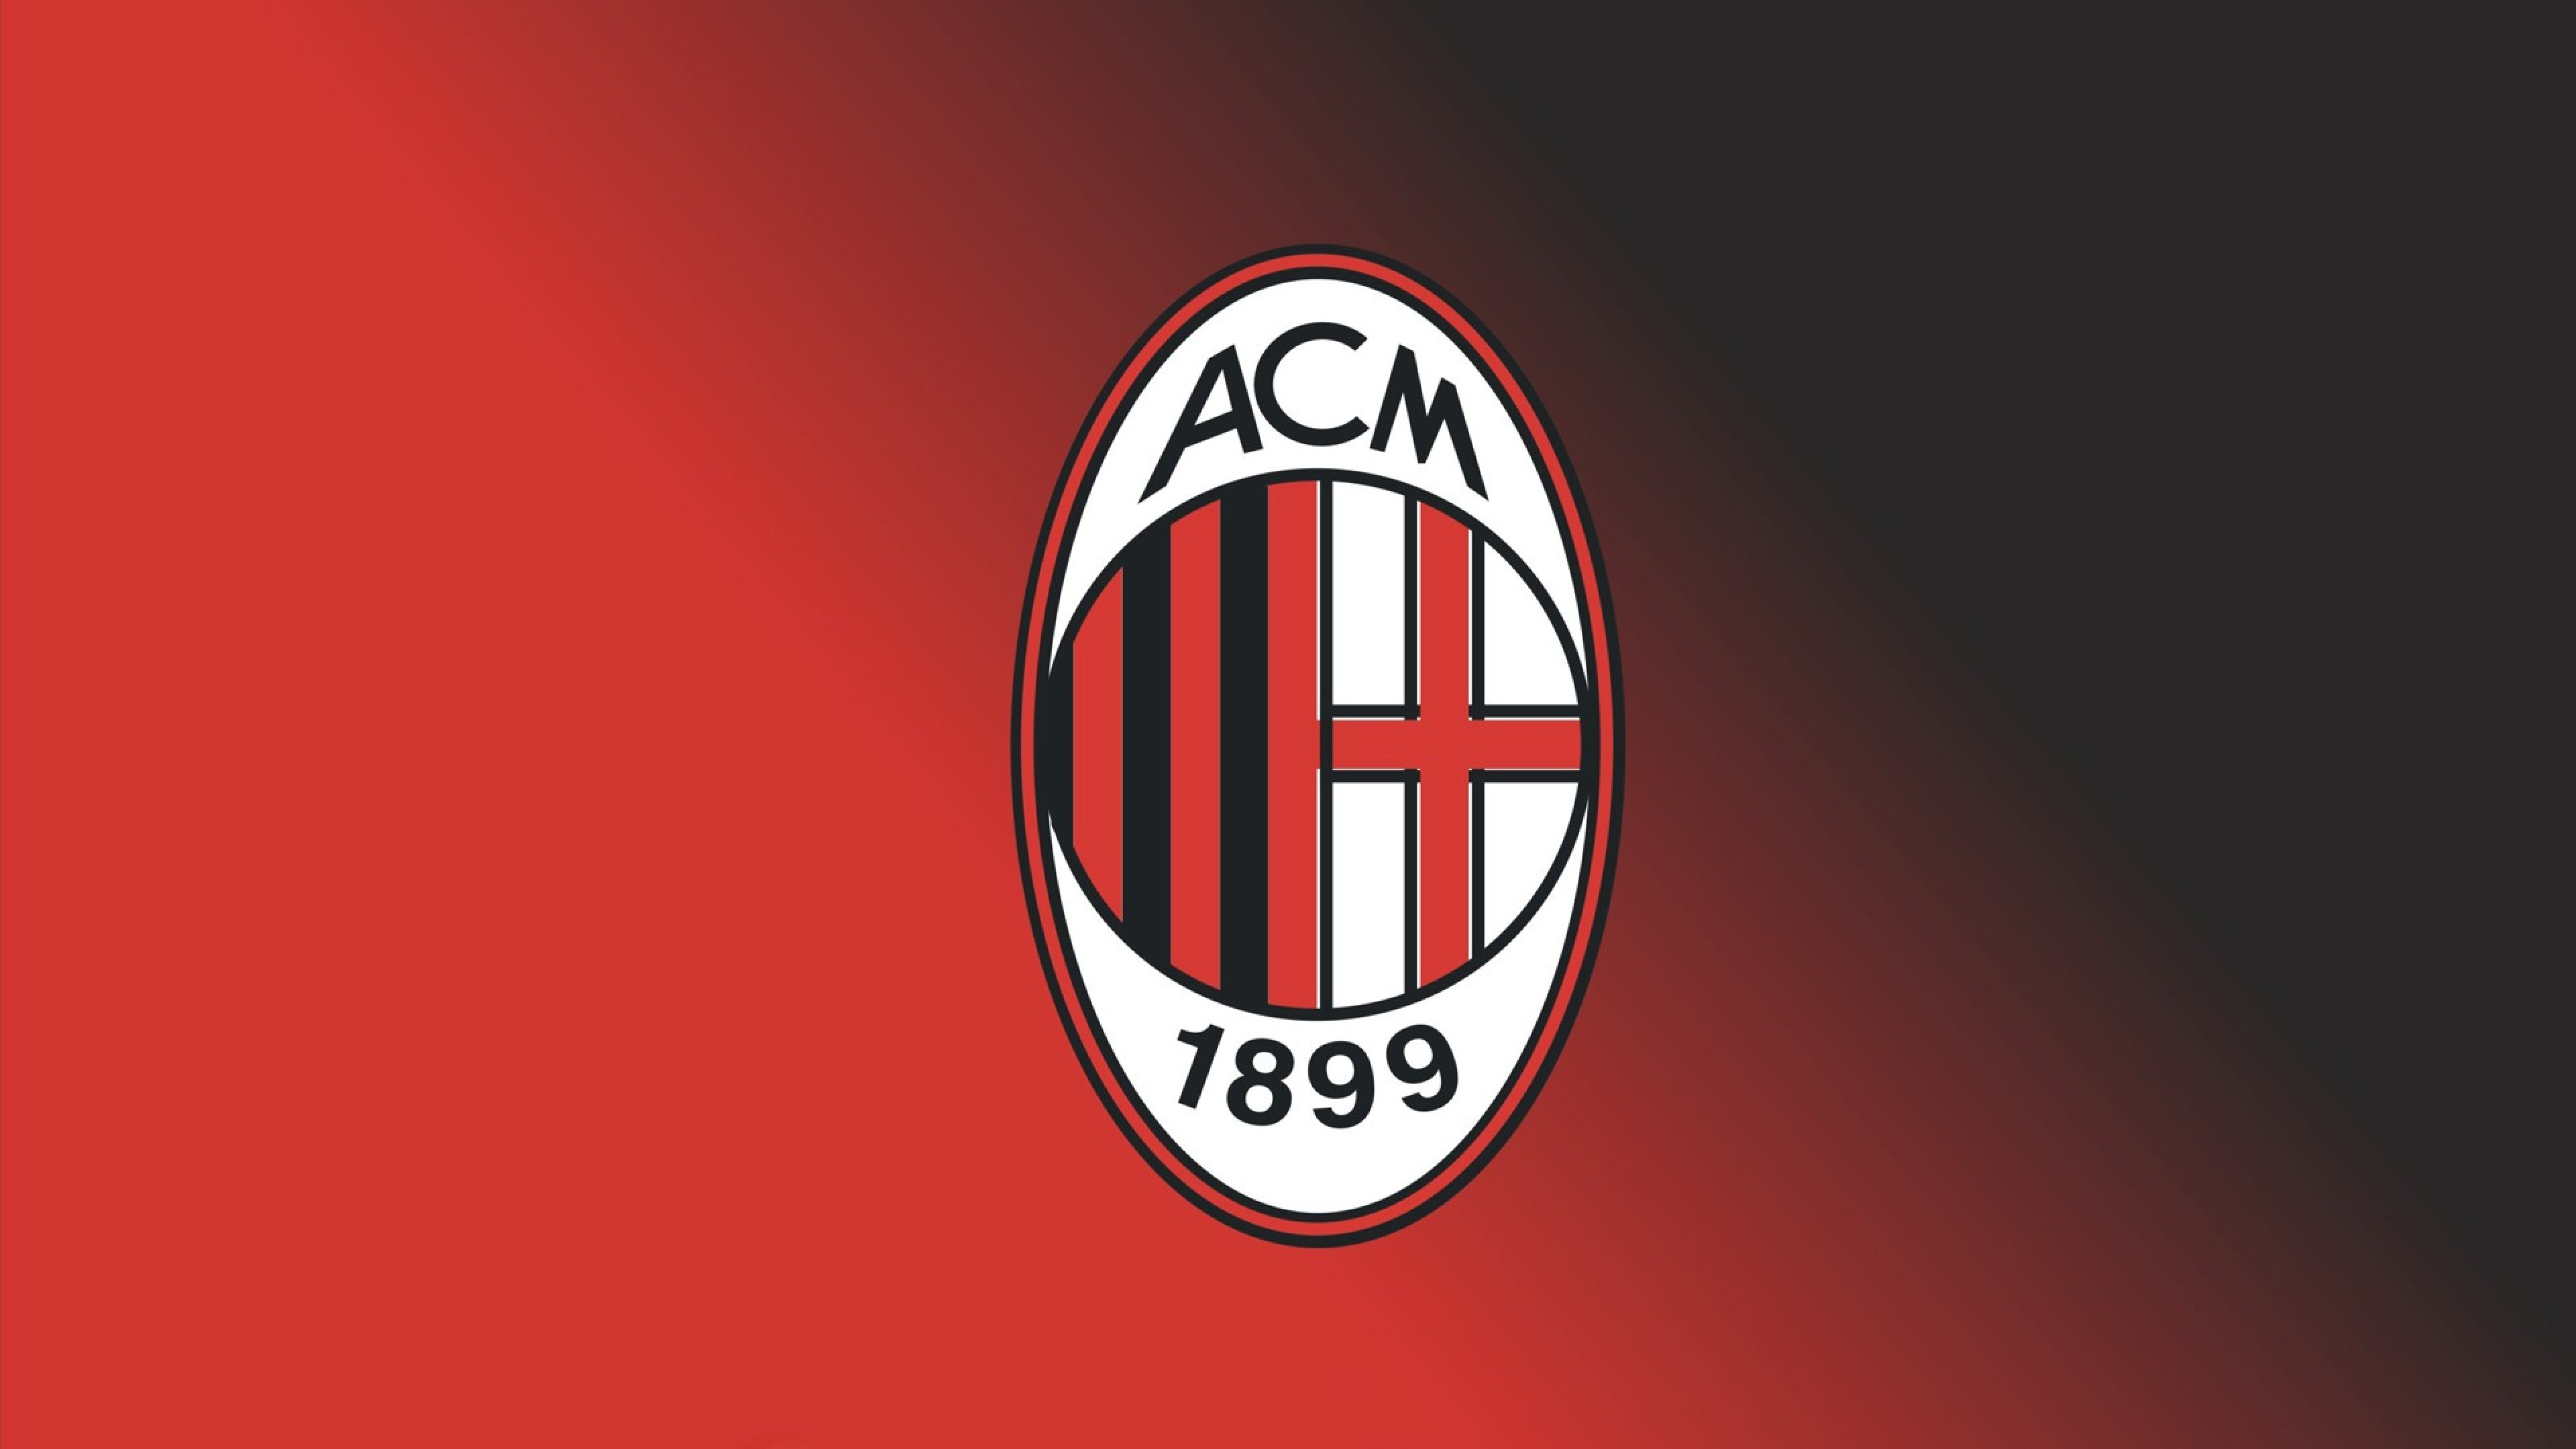 Hd wallpaper ac milan - Ultra Hd 4k Resolution